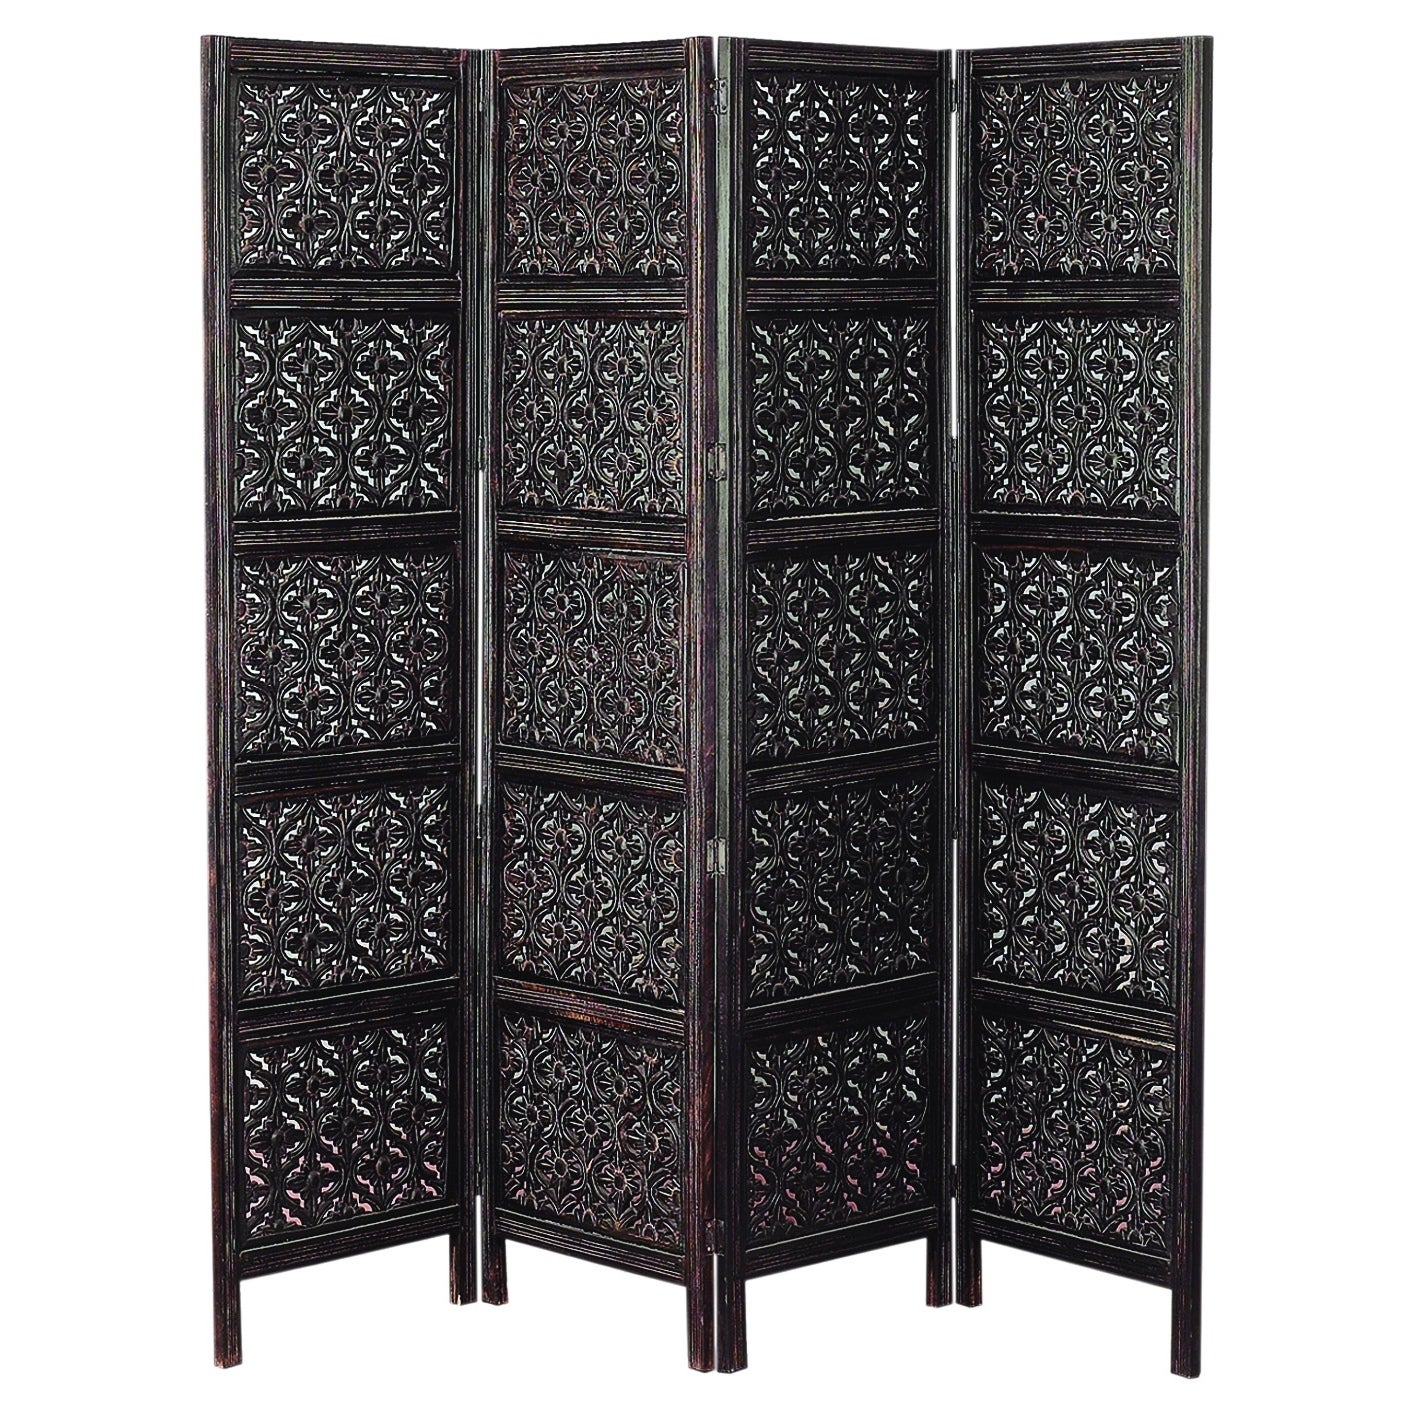 Studio 350 Wood 4 Panel Screen For Privacy And Decor Both...